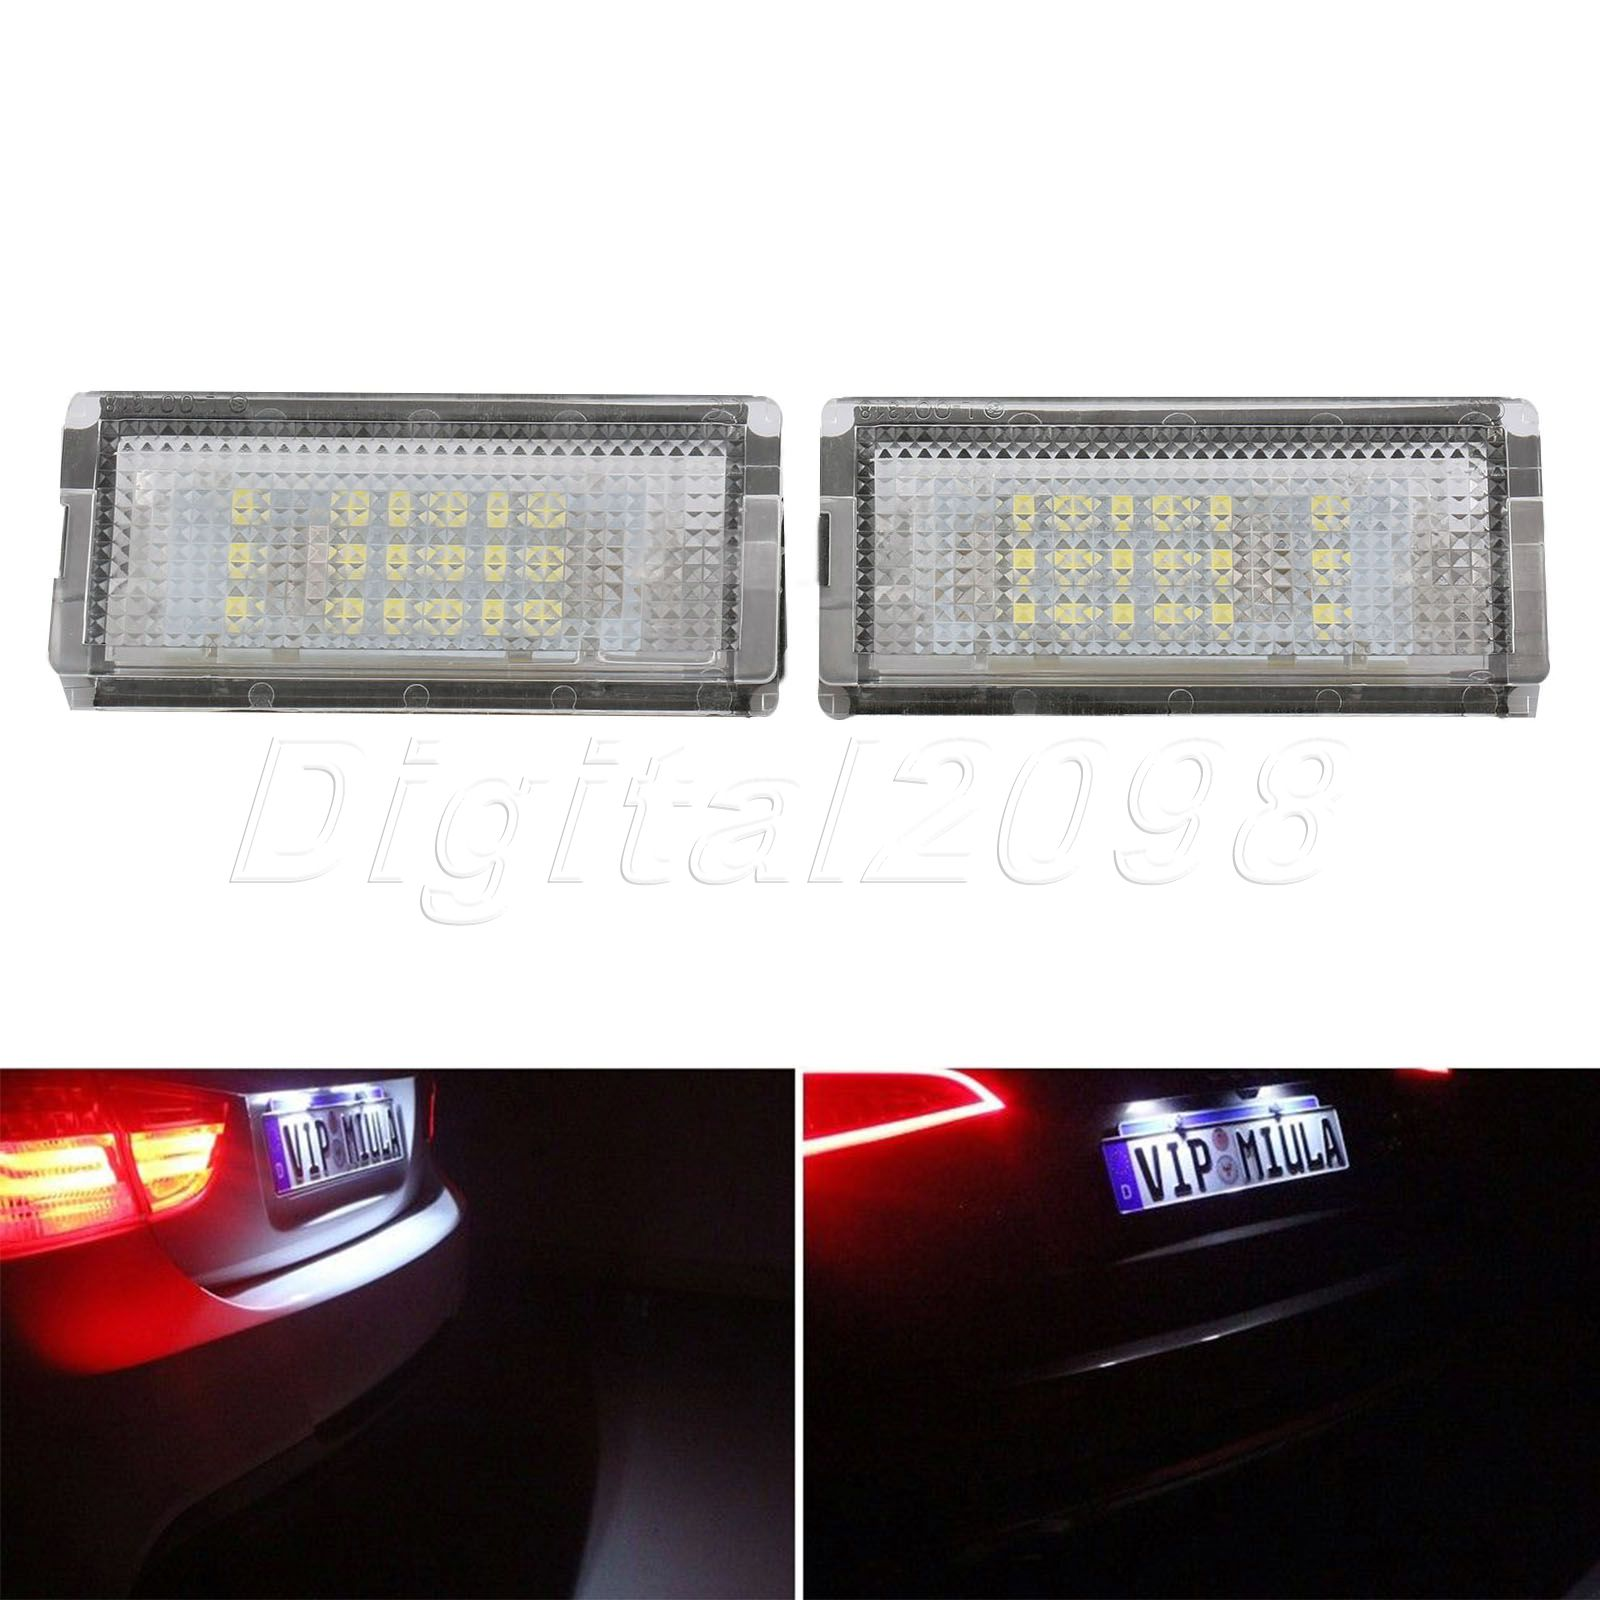 Yetaha 2x LED License Number Plate Light Bulb Lamp Error Free SMD White Lights Lamp For BMW 3Series E46 4D Sedan 5D Wagon dayan gem vi cube speed puzzle magic cubes educational game toys gift for children kids grownups